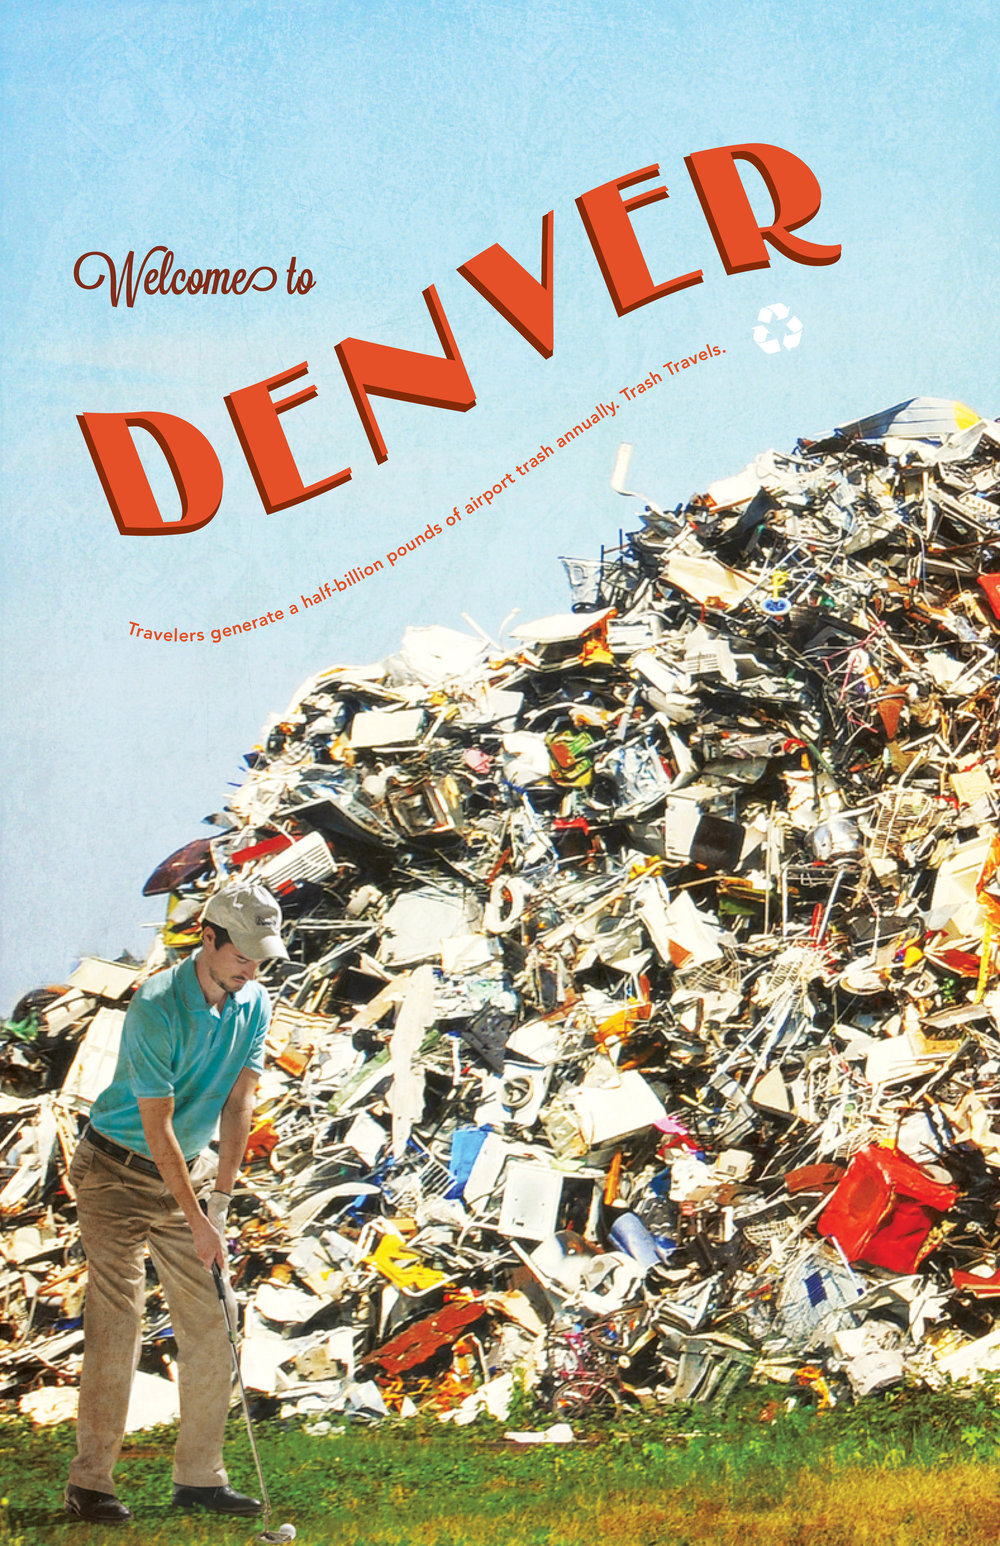 Recycling_Denver.jpg